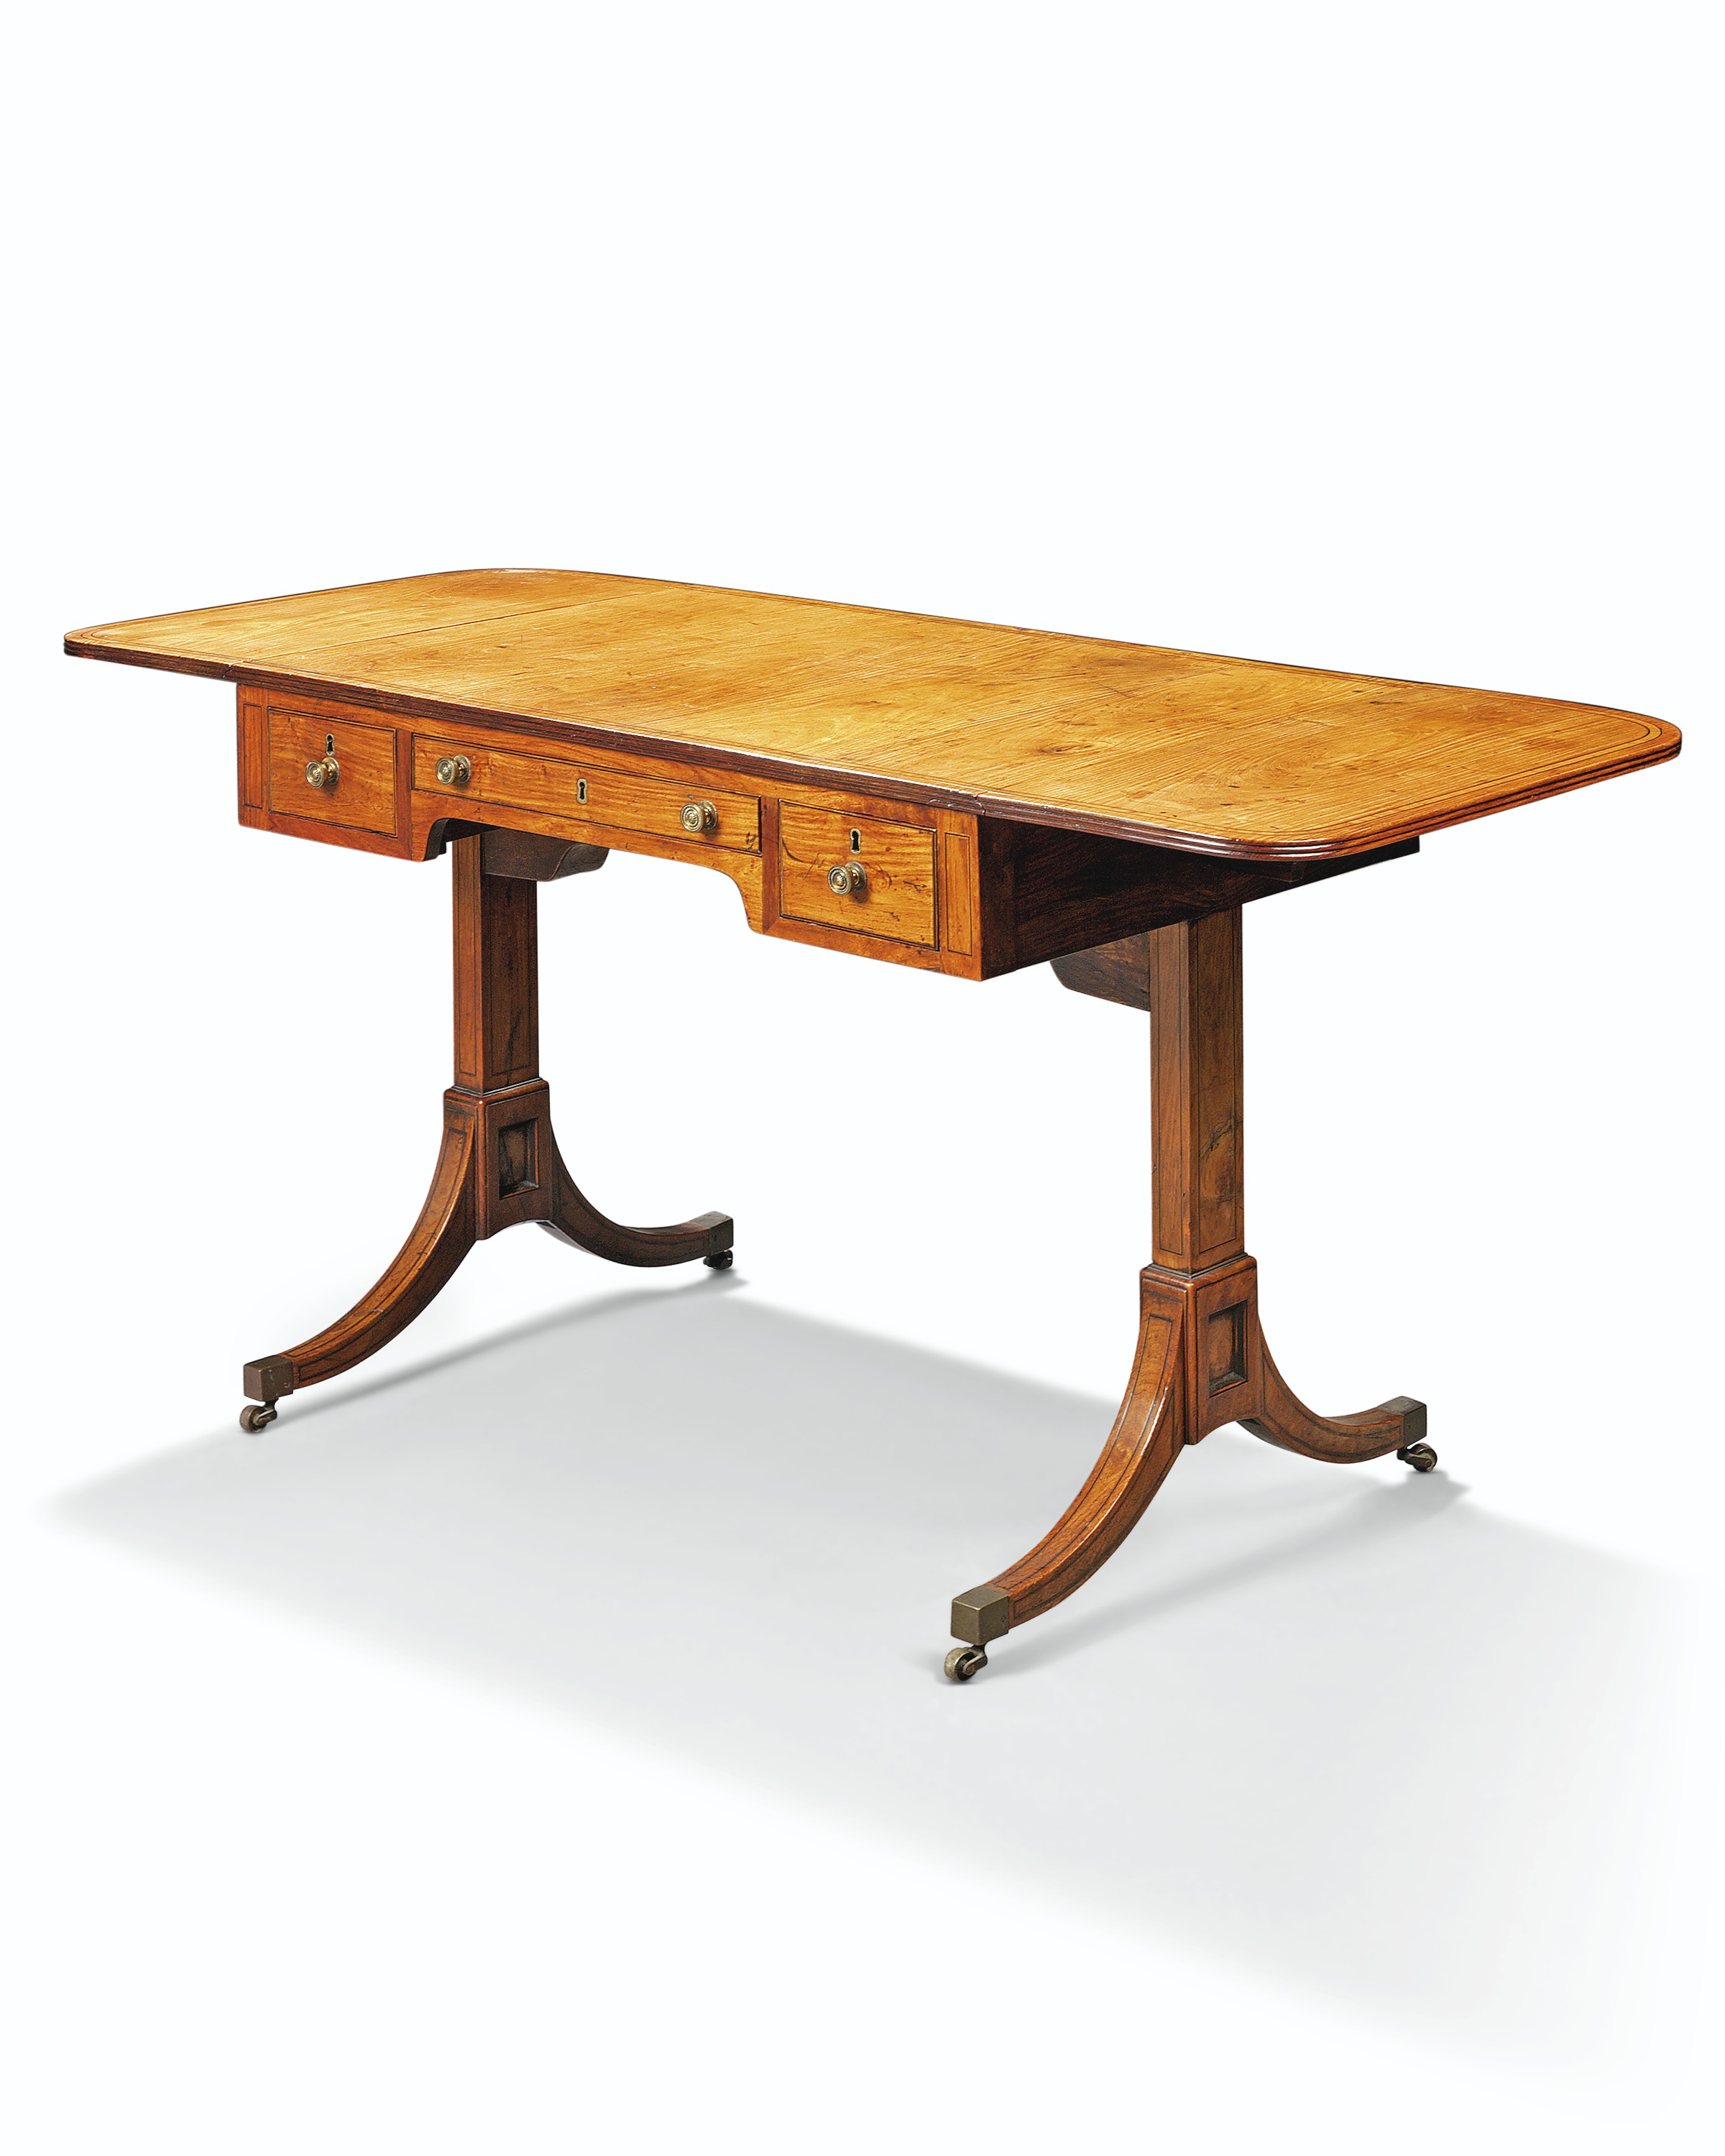 A Chinese Export Rosewood Sofa Table